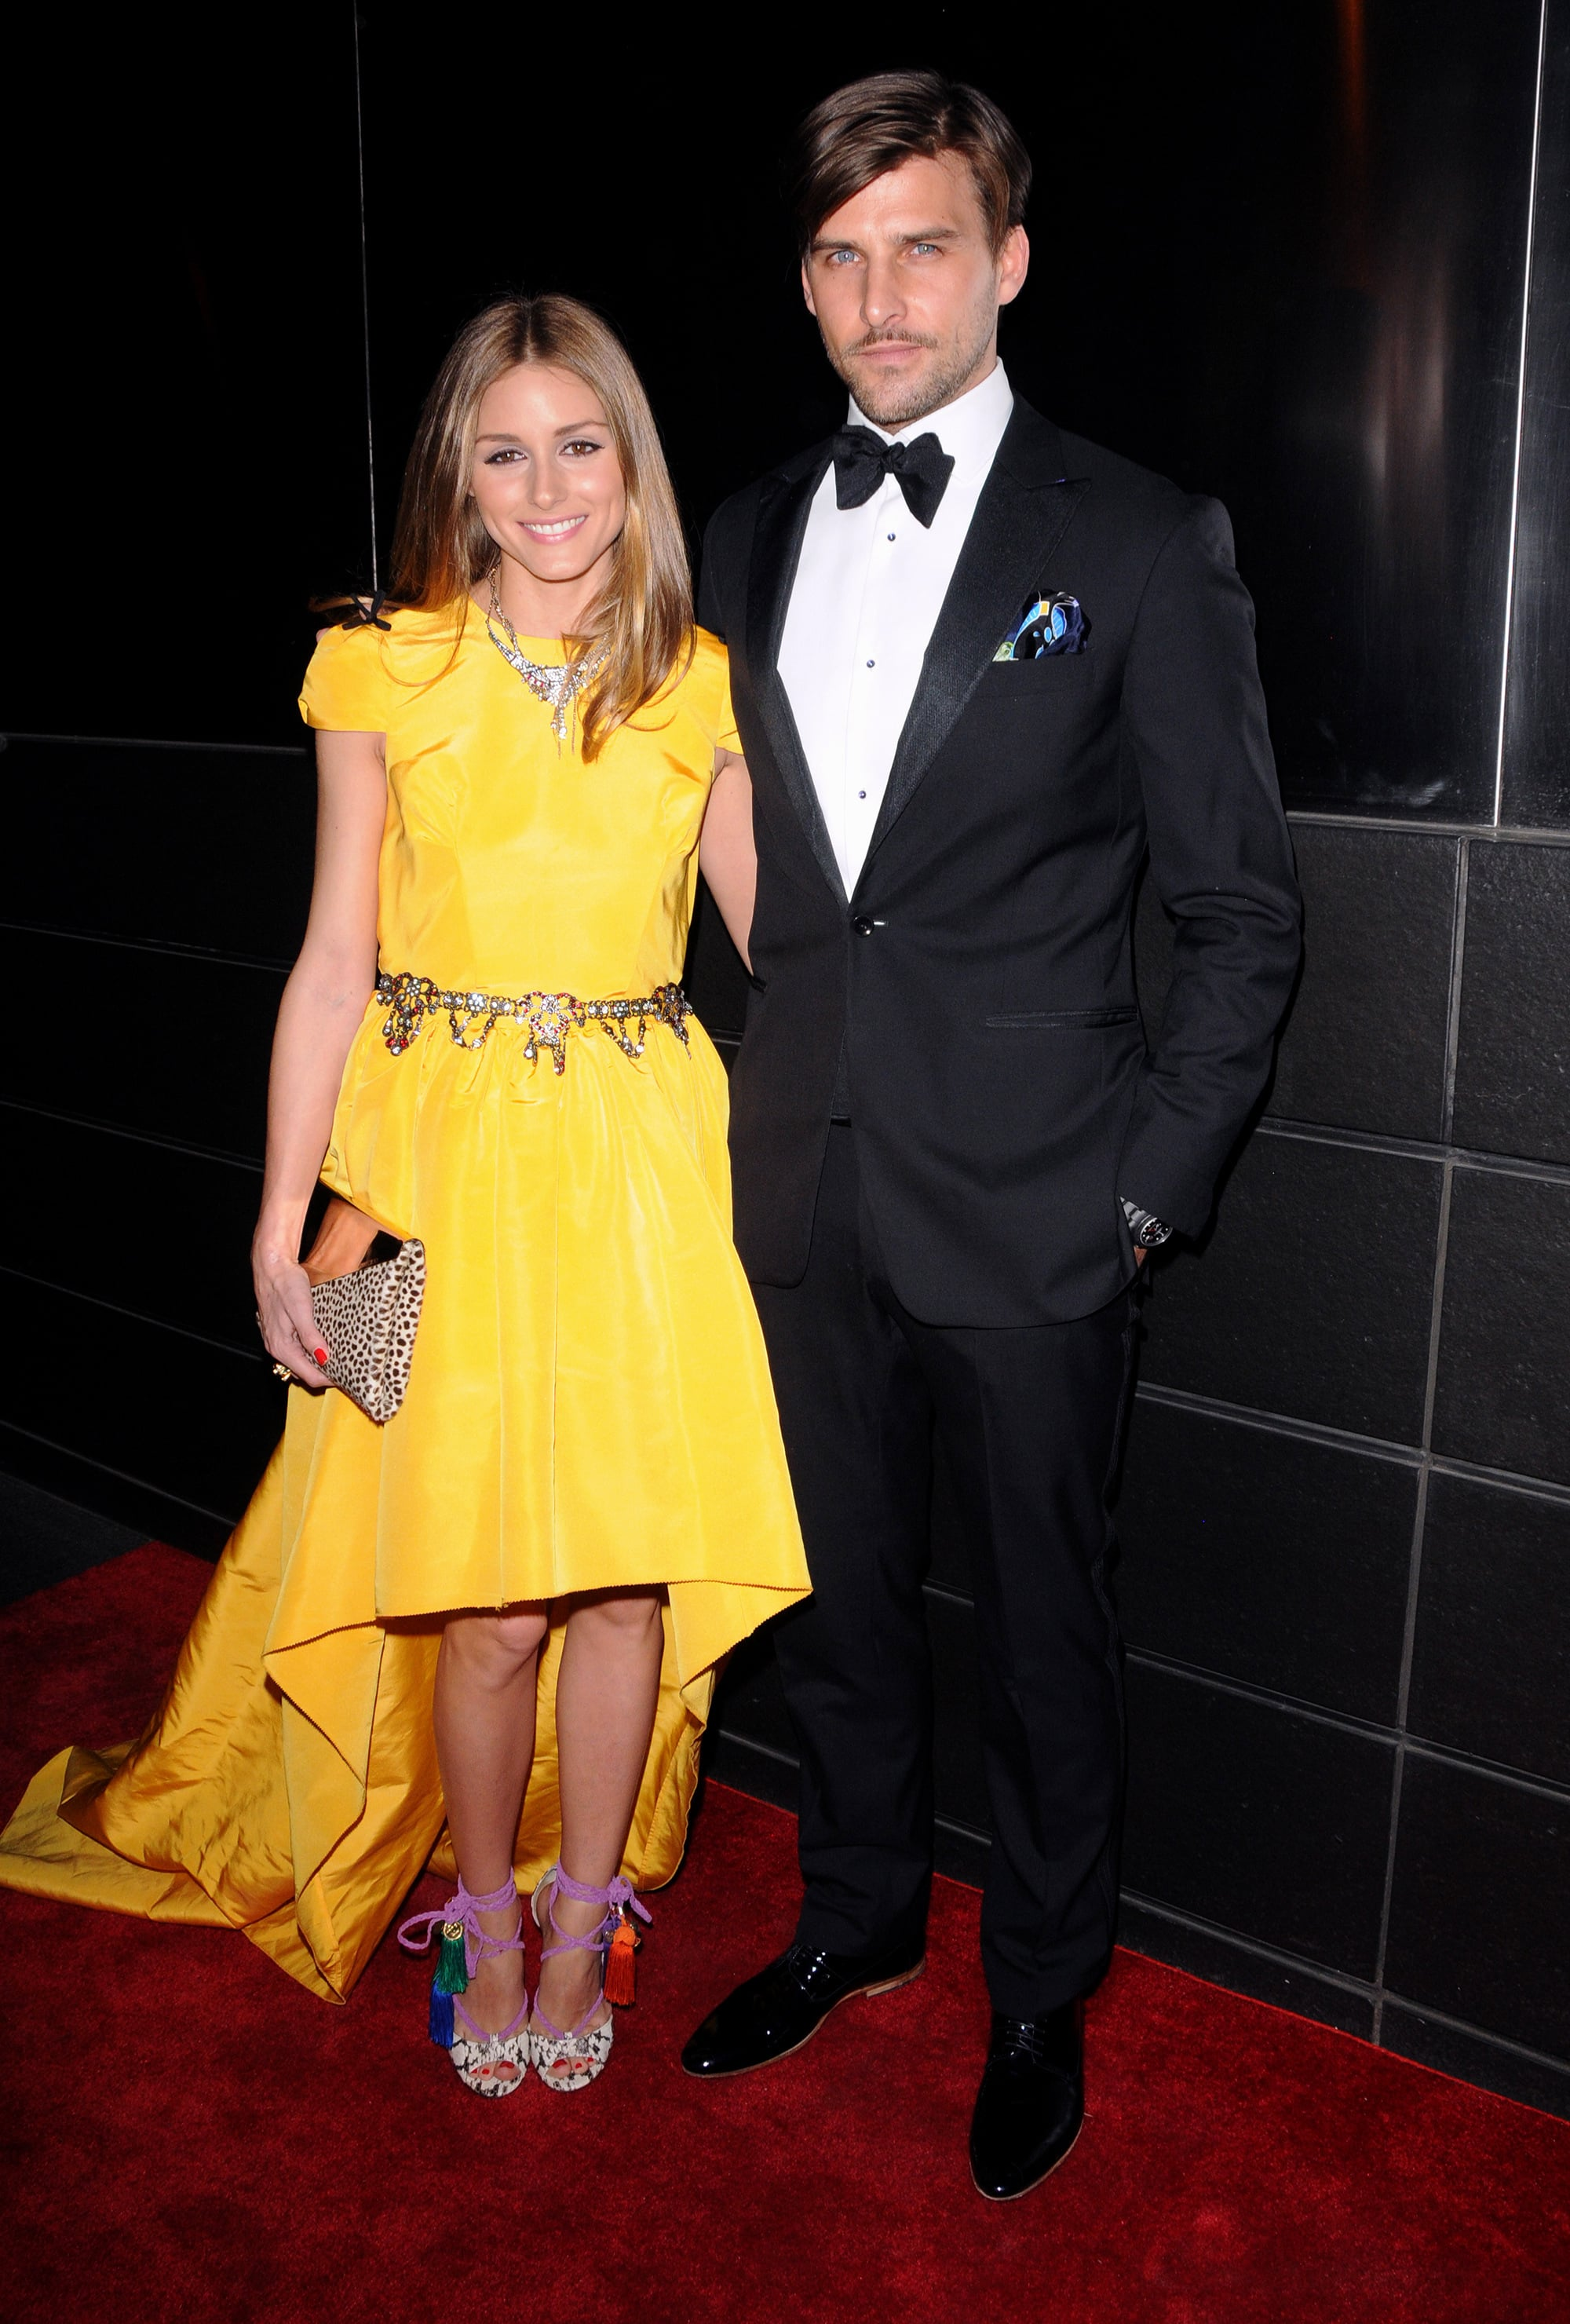 Olivia Palermo wore a Katie Ermilio gown for the New Yorkers for Children dinner in NYC.